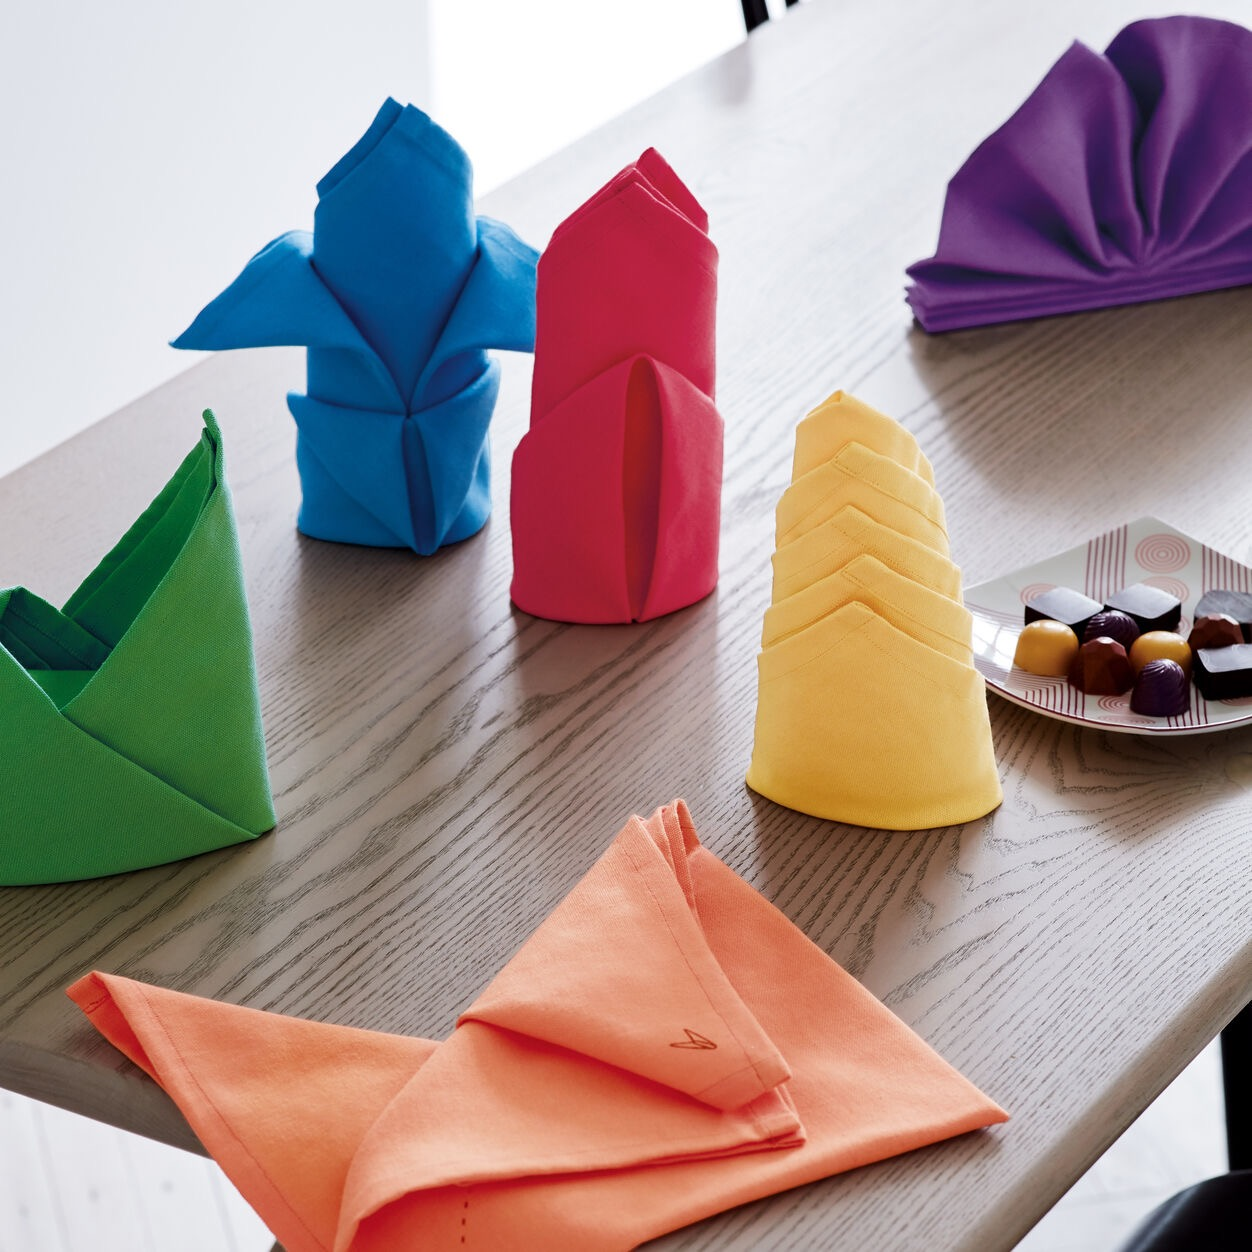 A photograph of folded napkins of different colors.